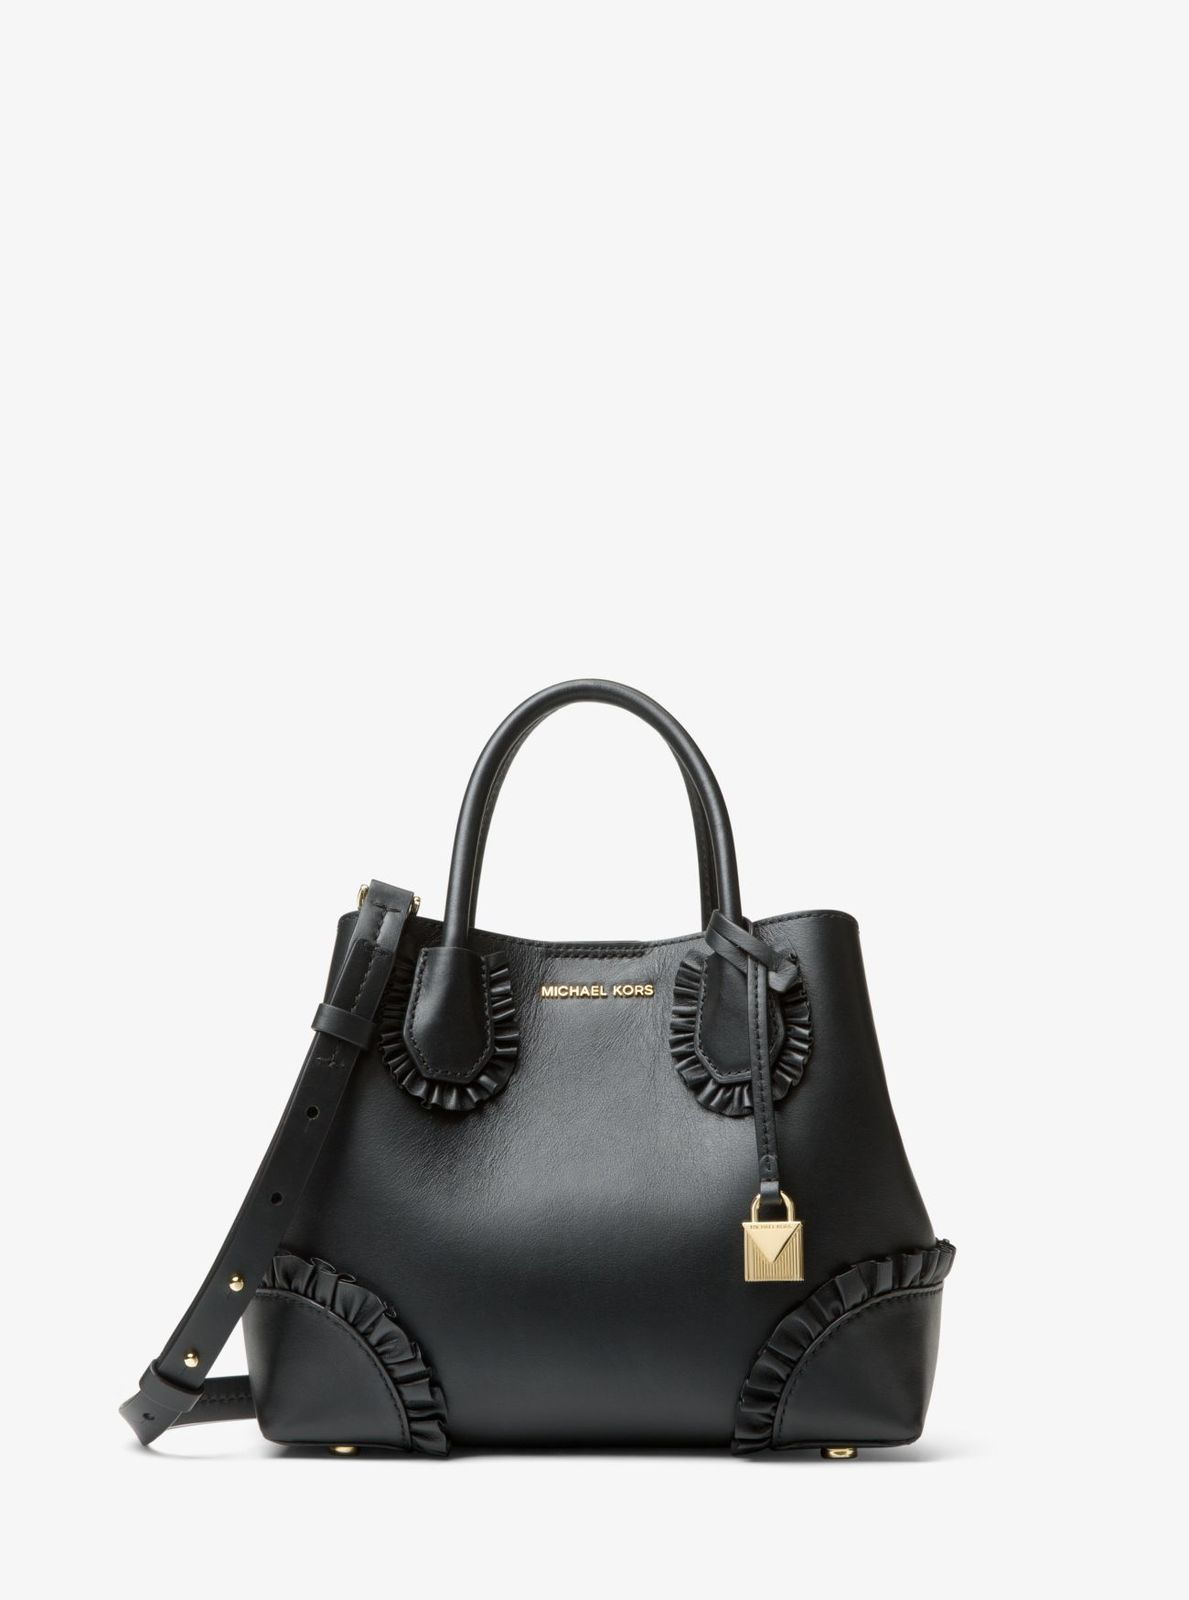 b1eed6cdea58 Michael kors Mercer Gallery Corner Ruffled and 50 similar items. 30s8gz5t5y  mercer gallery small ruffled leather satchel black 1